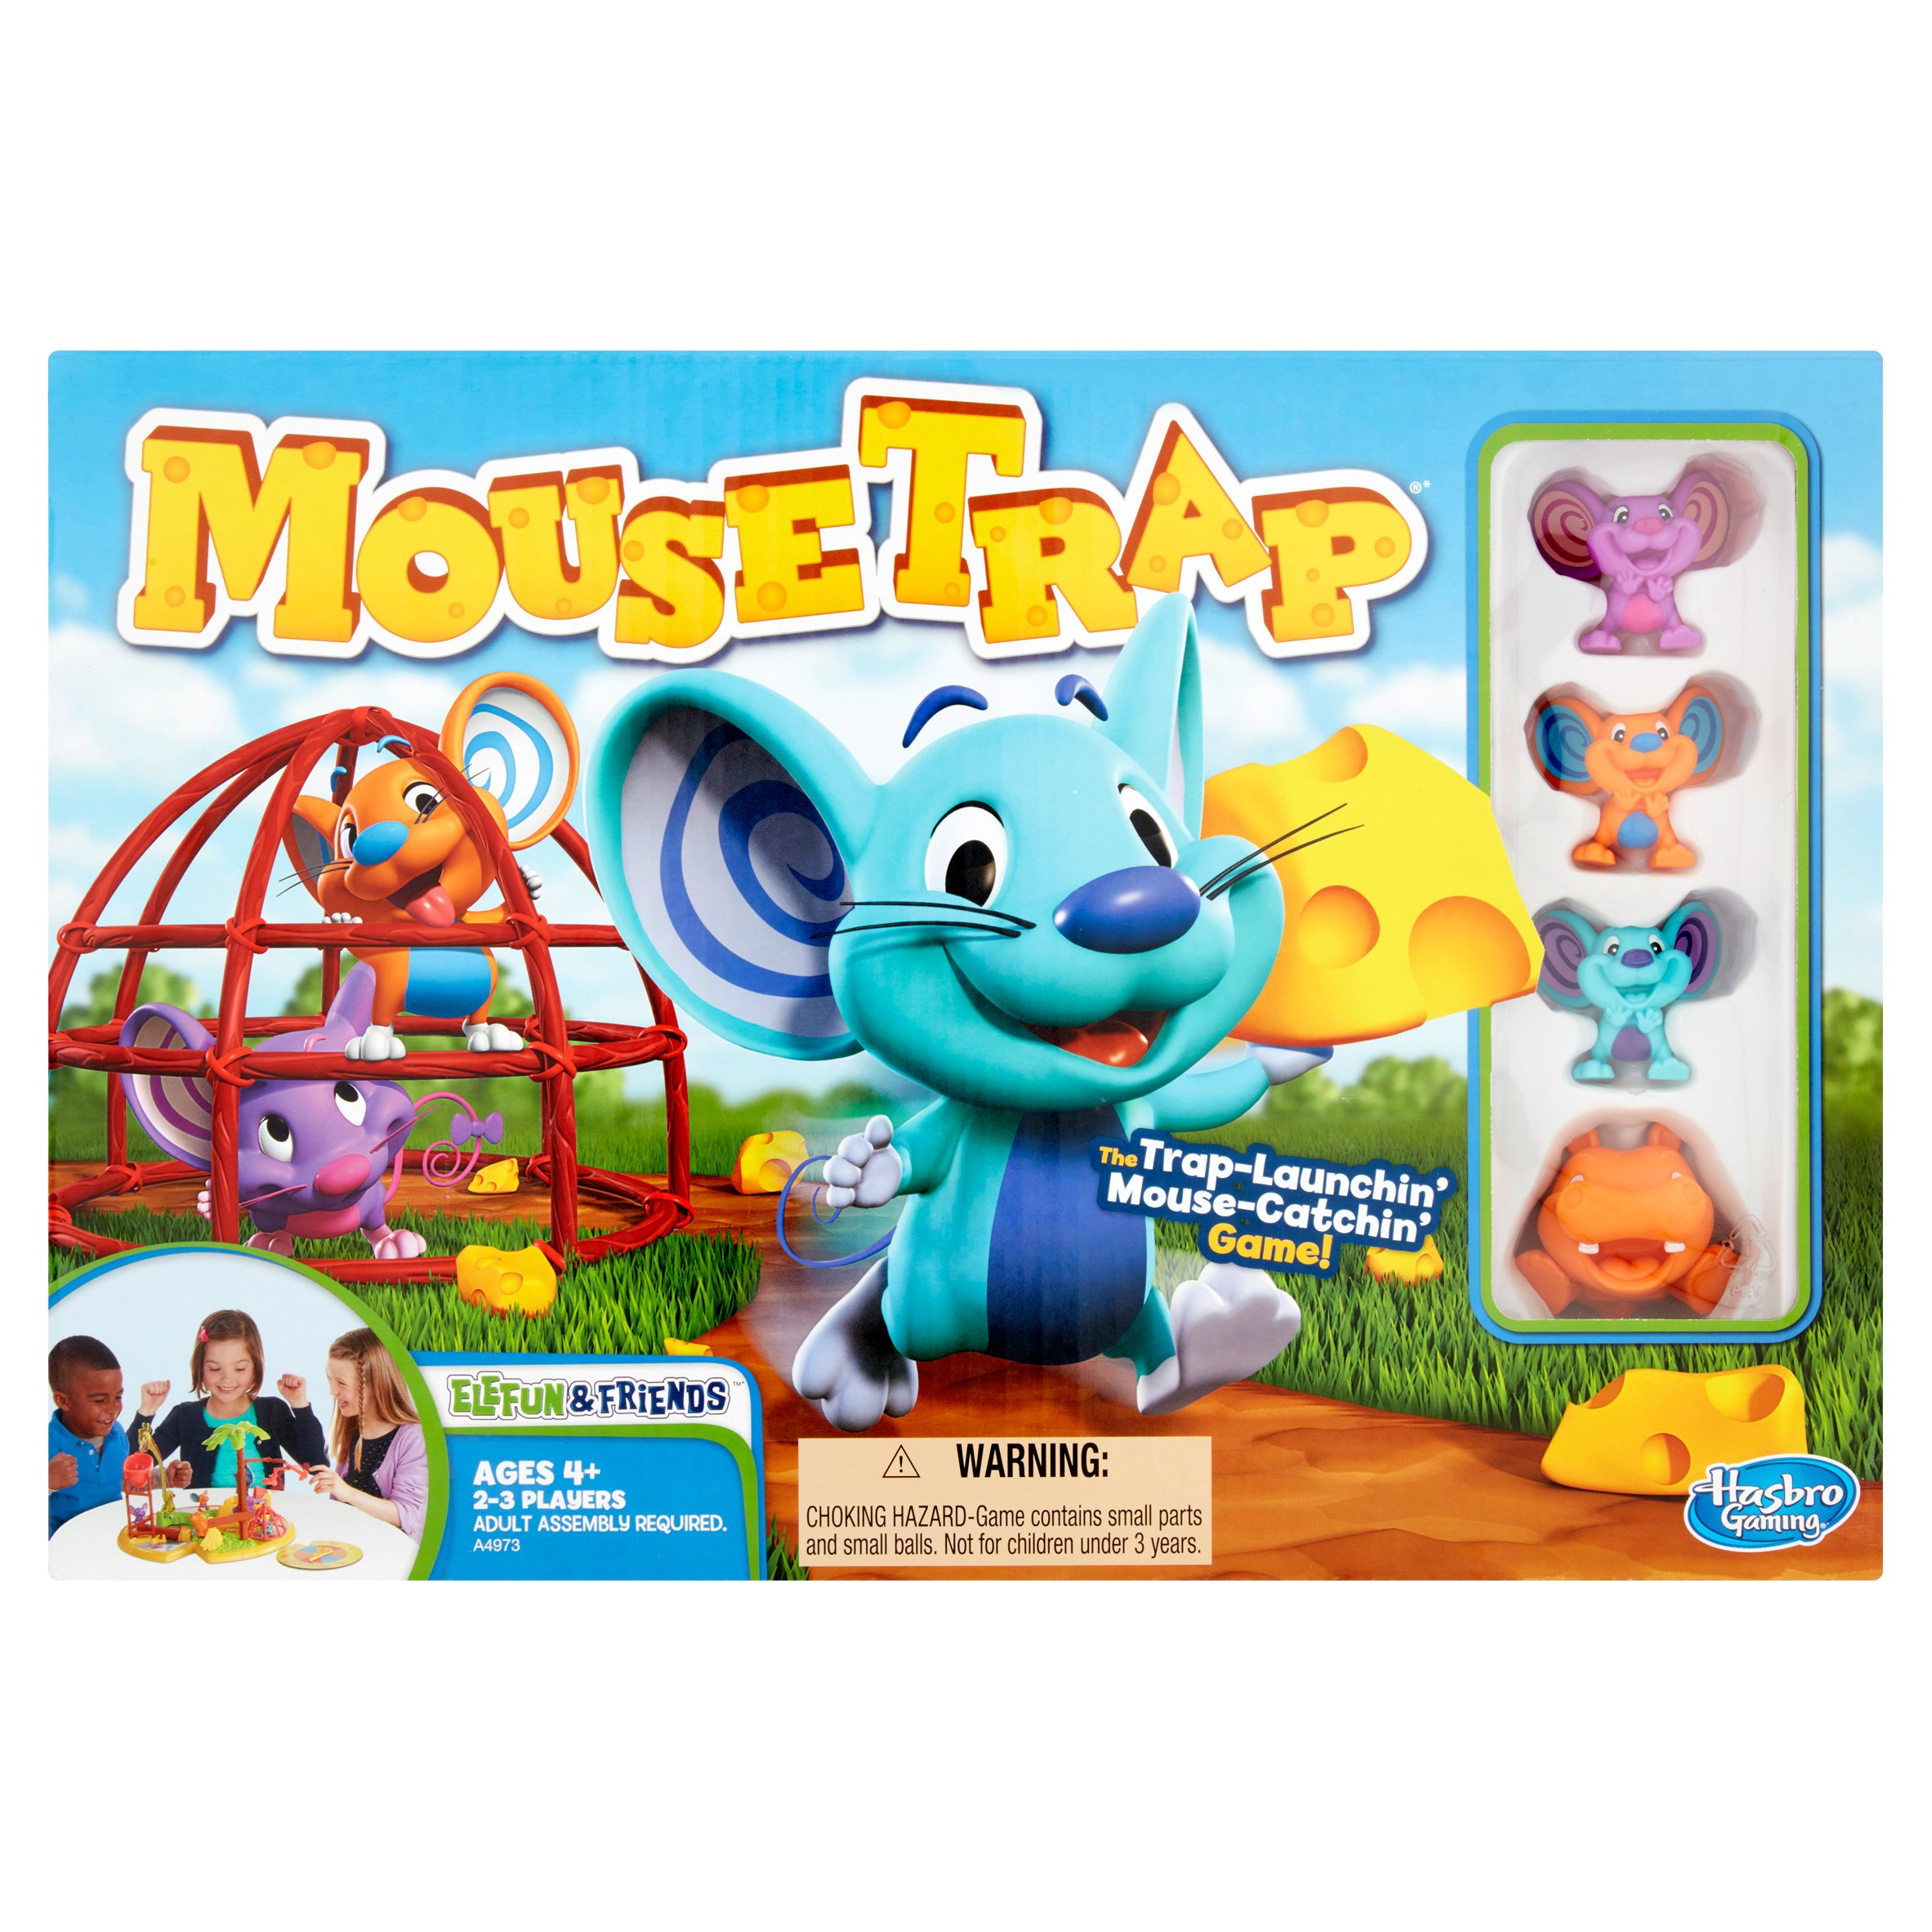 Mousetrap Game by Hasbro